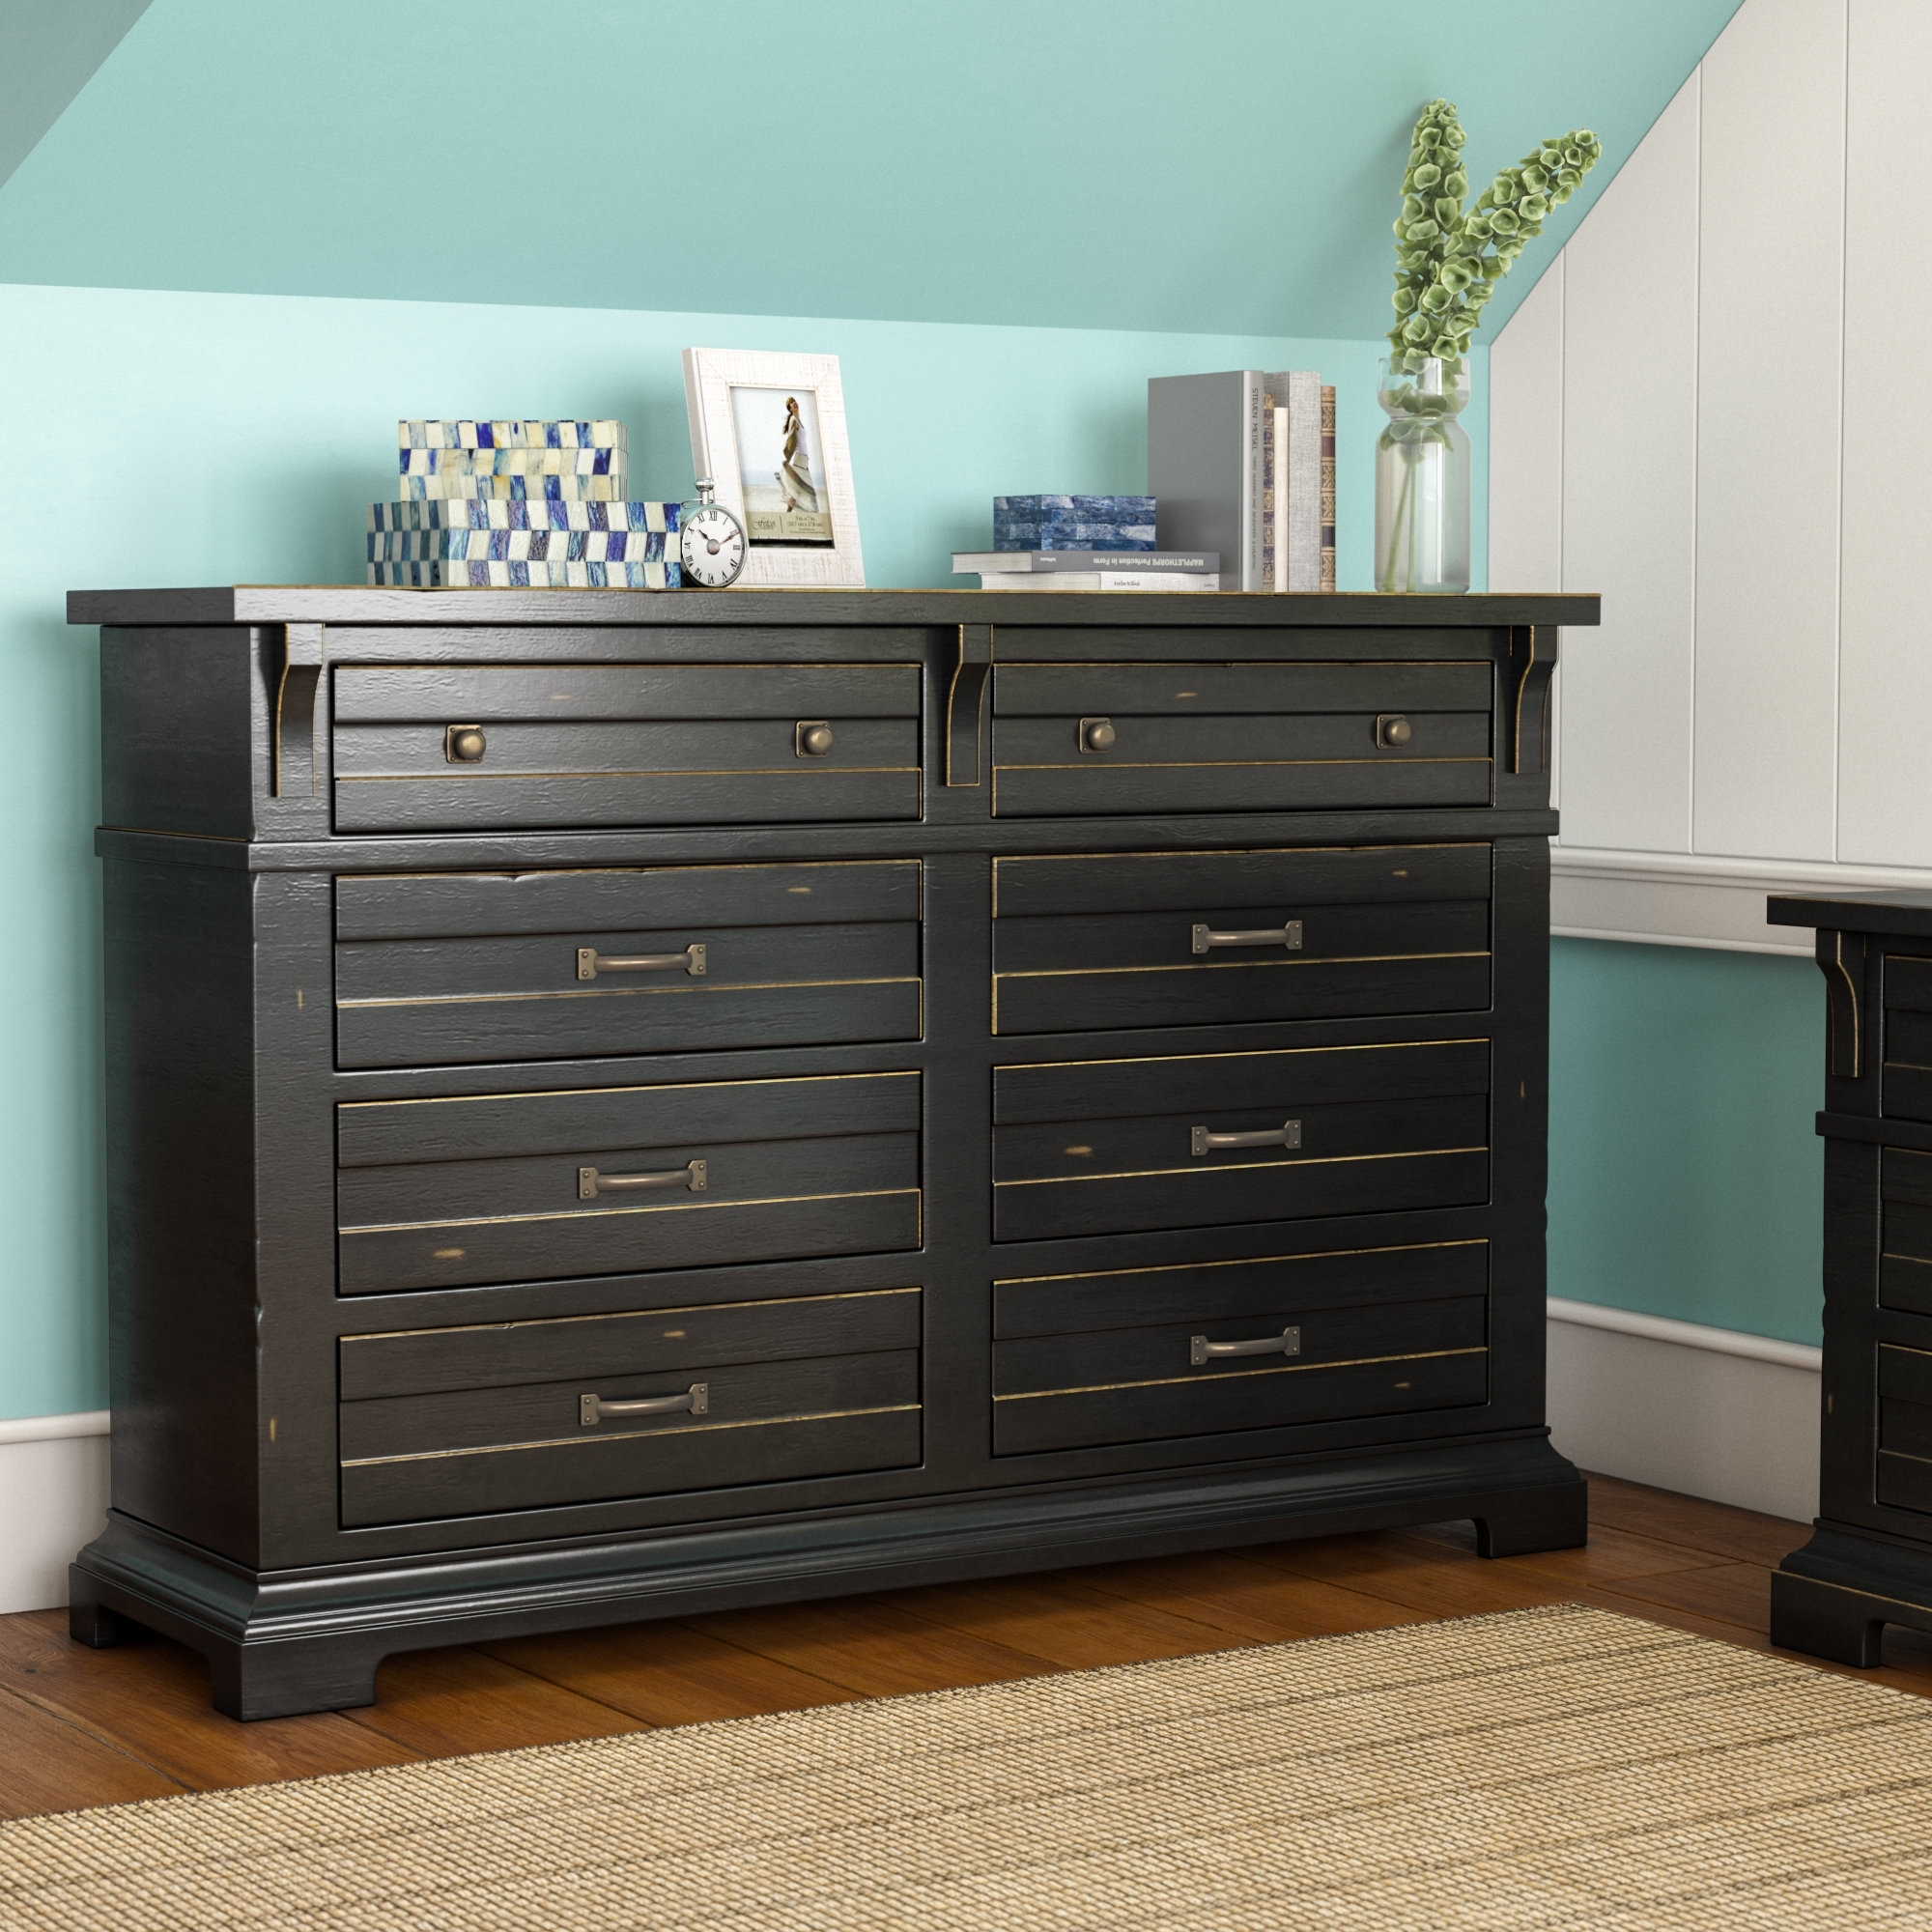 Longshore Tides Jenifry 8 Drawer Dresser & Reviews | Wayfair (#14 of 20)